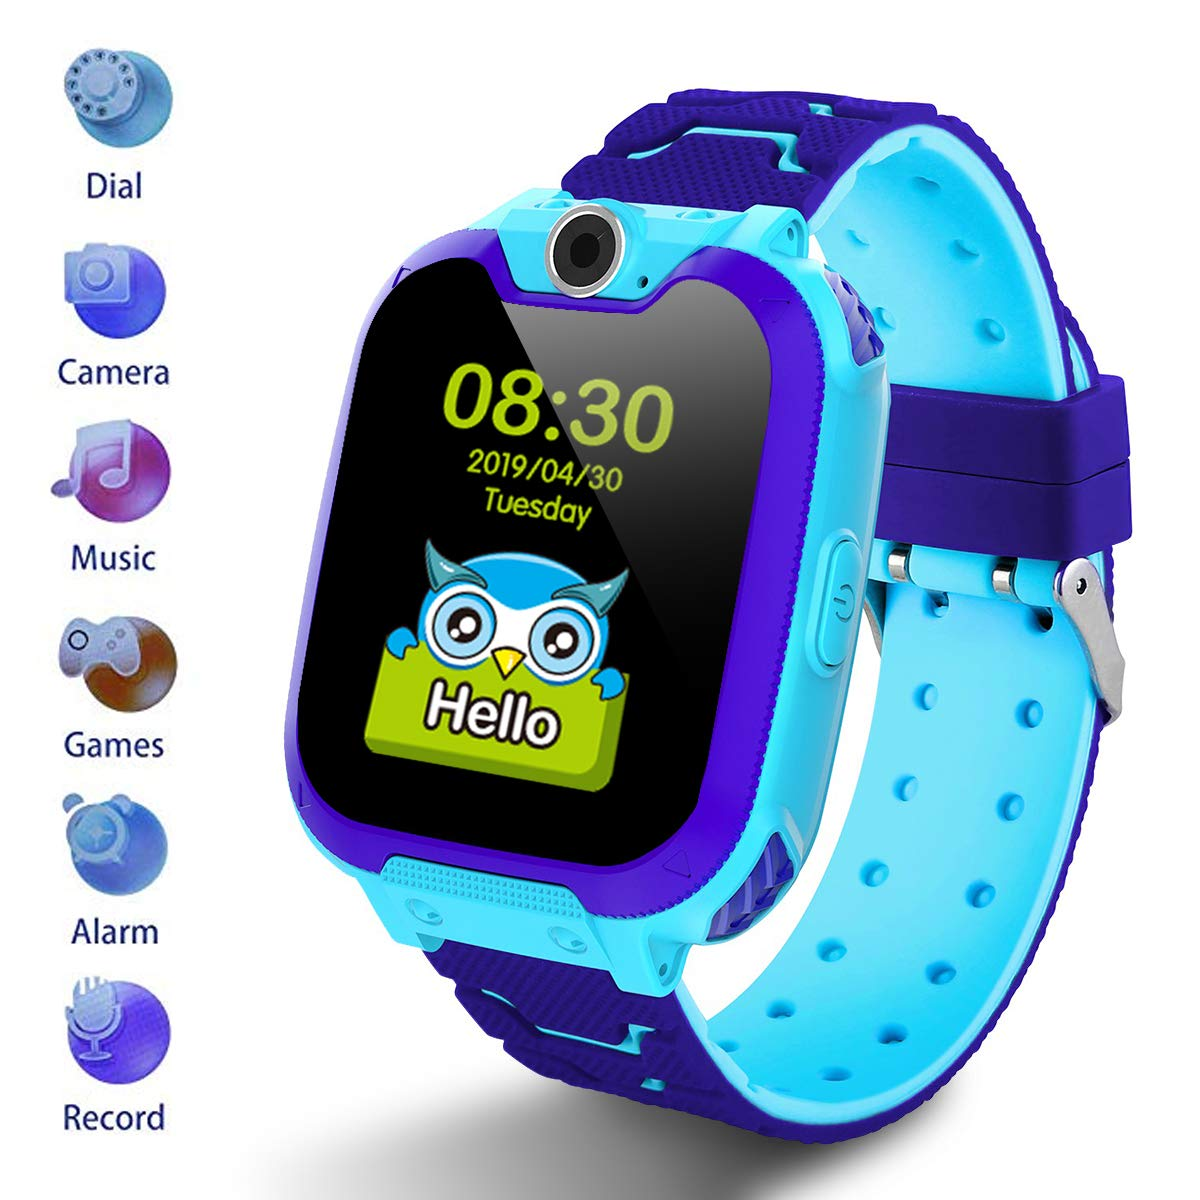 HuaWise Kids Smartwatch [SD Card Included], 1.54 inch Colorful Touch Screen Smartwatch for Children with Quick Dial, Camera and Music Player,Calculator and Alarm for Boys and Girls(NOT Support AT&T) by HuaWise (Image #1)